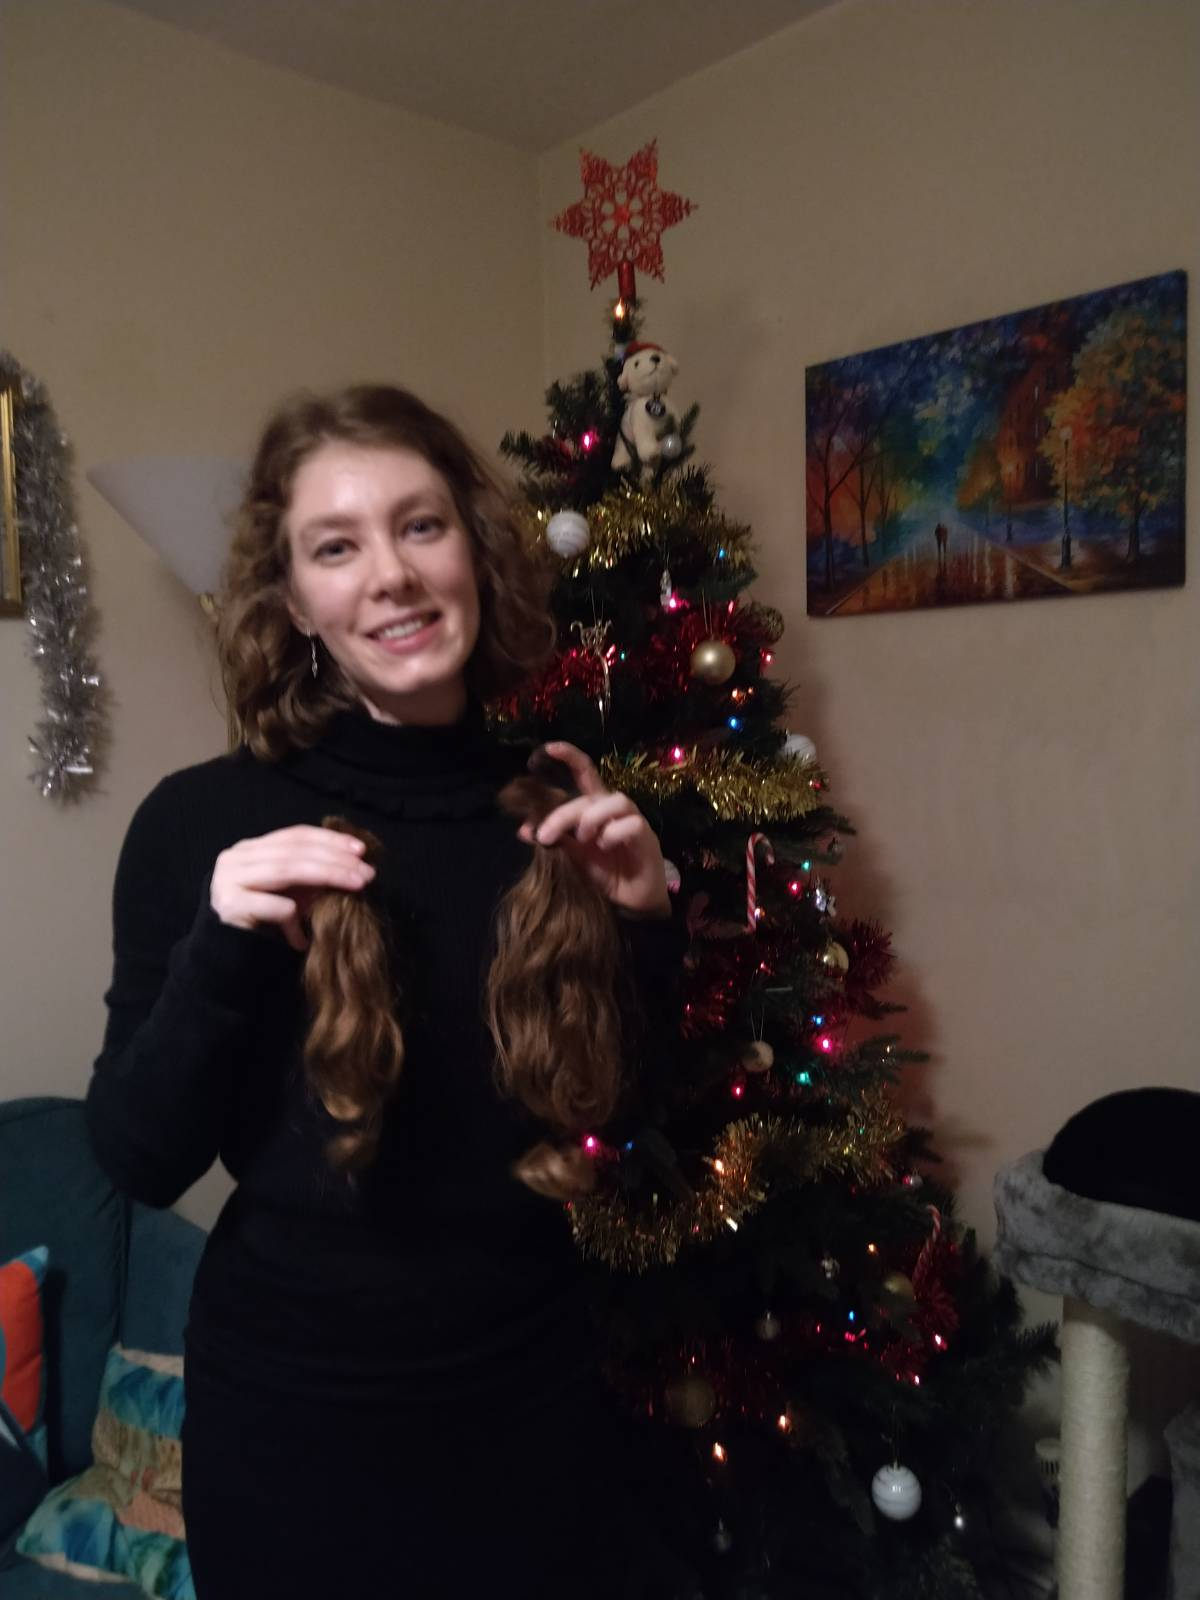 Lockdown hair donation - one of many I'm sure!